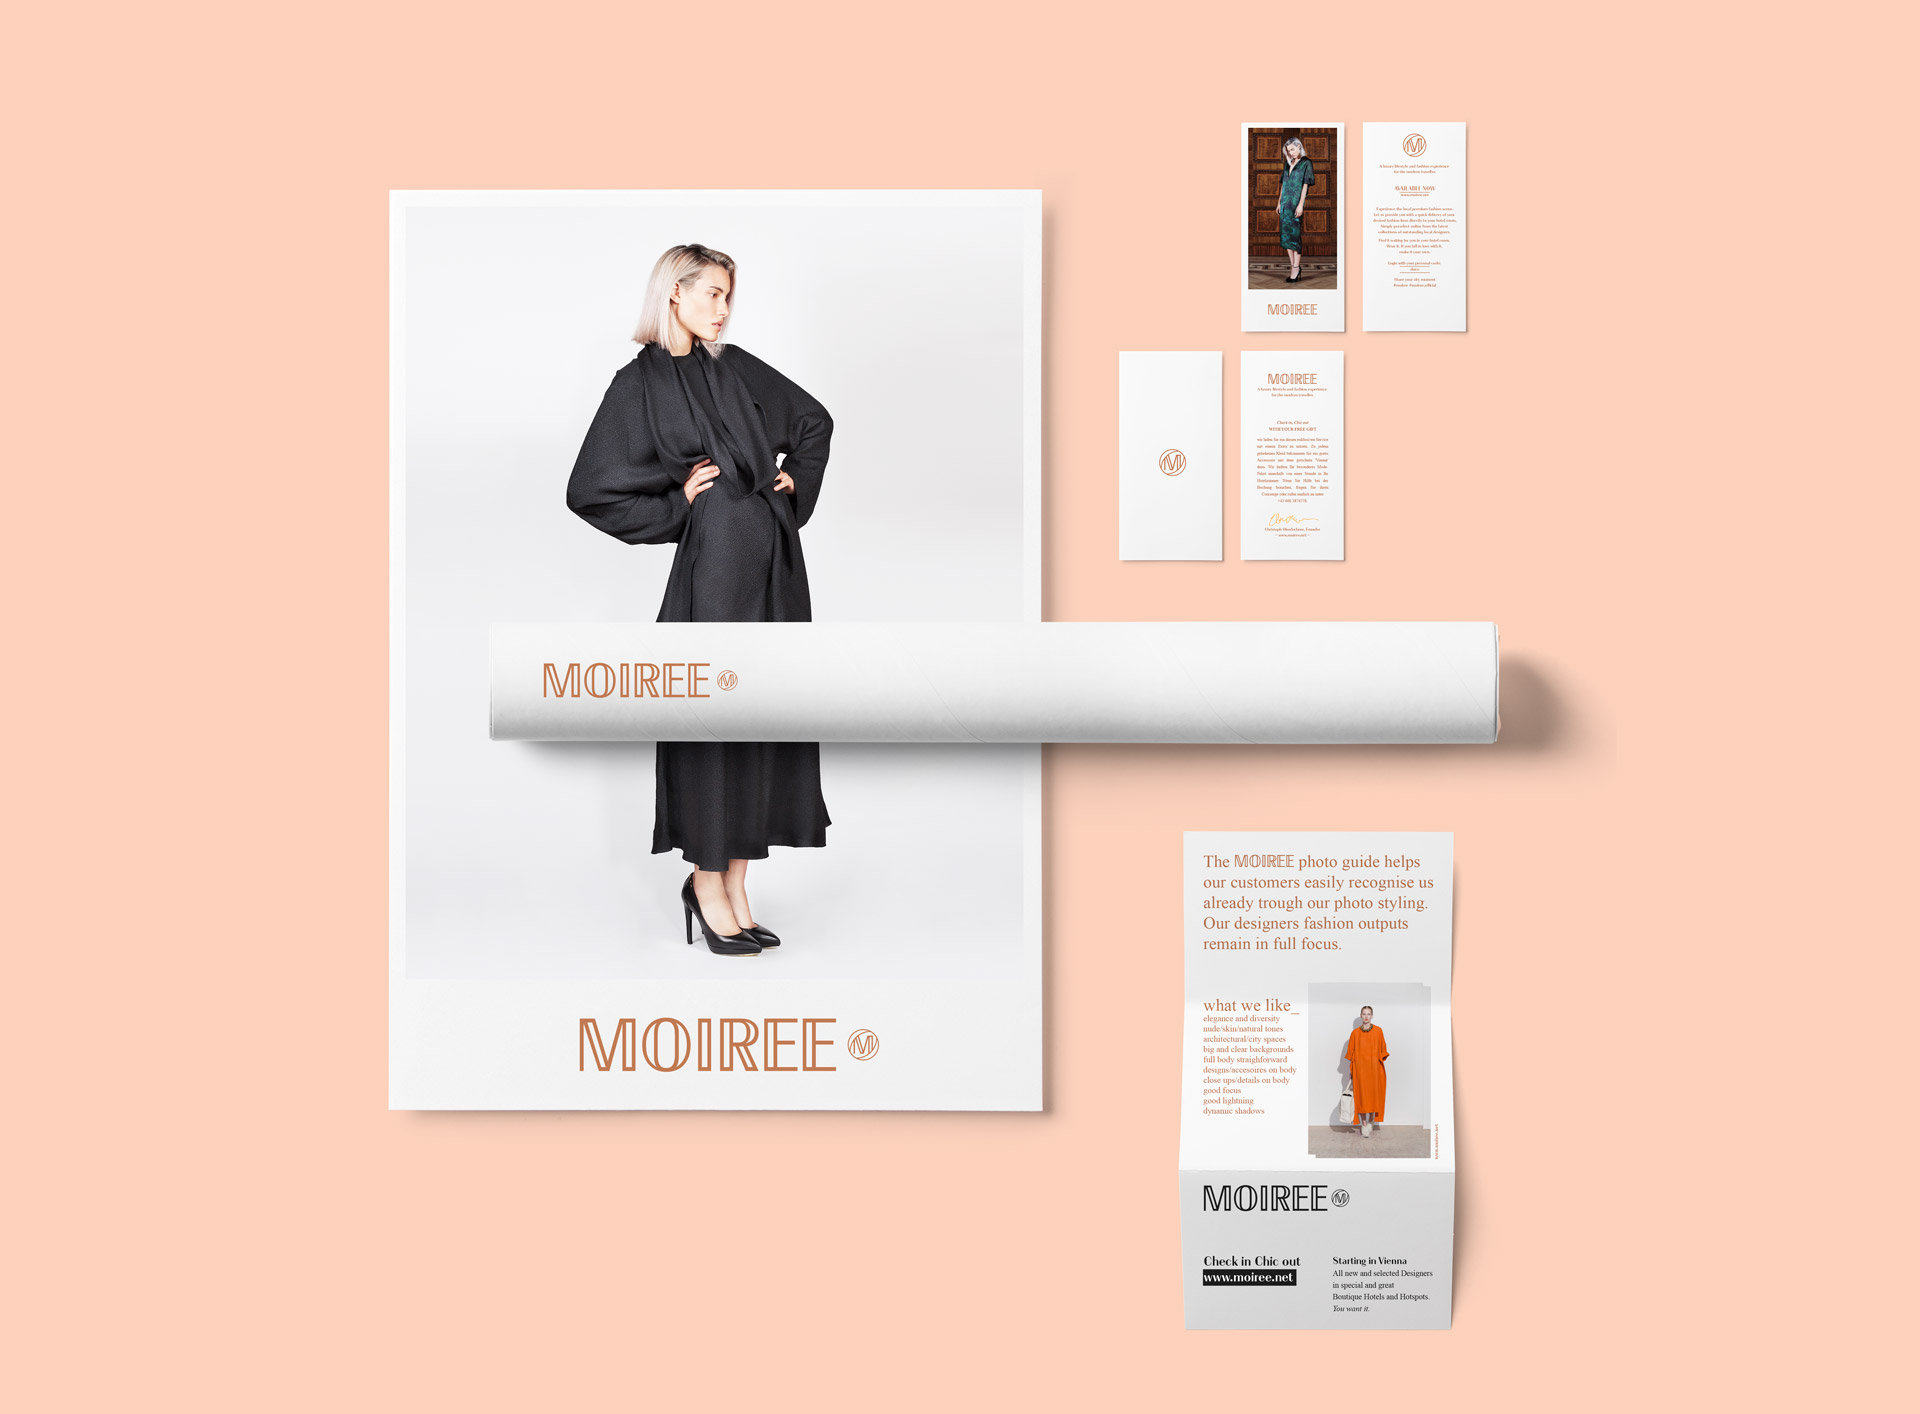 Zukunvt_Moiree_Branding_Stationary2